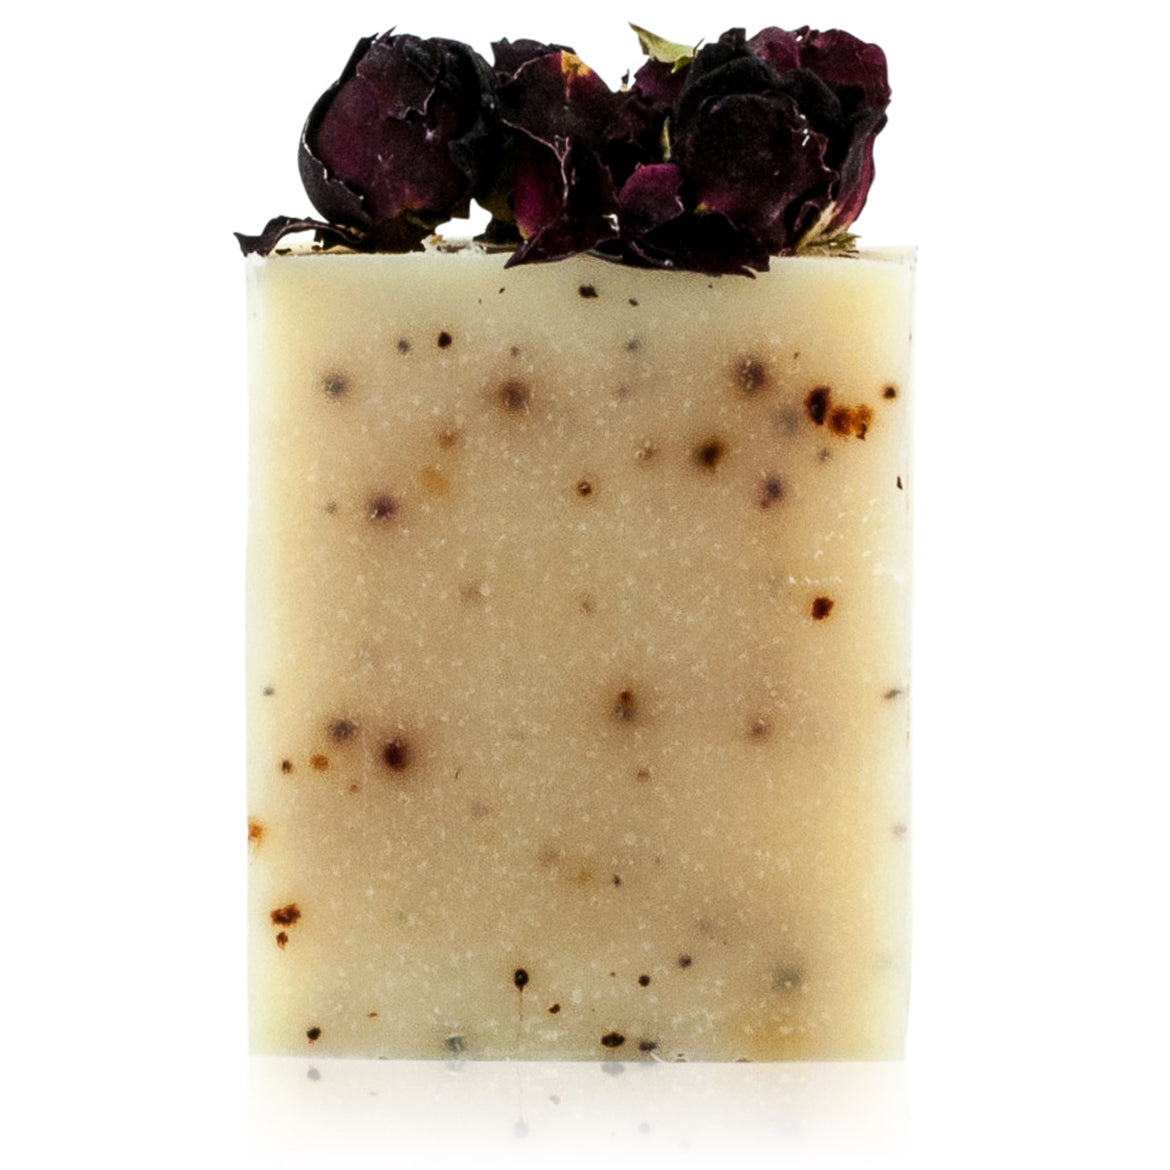 Natural vegan skincare Rose butter soap bar, decorated with rose buds, handmade by WiDEYE in Rye.